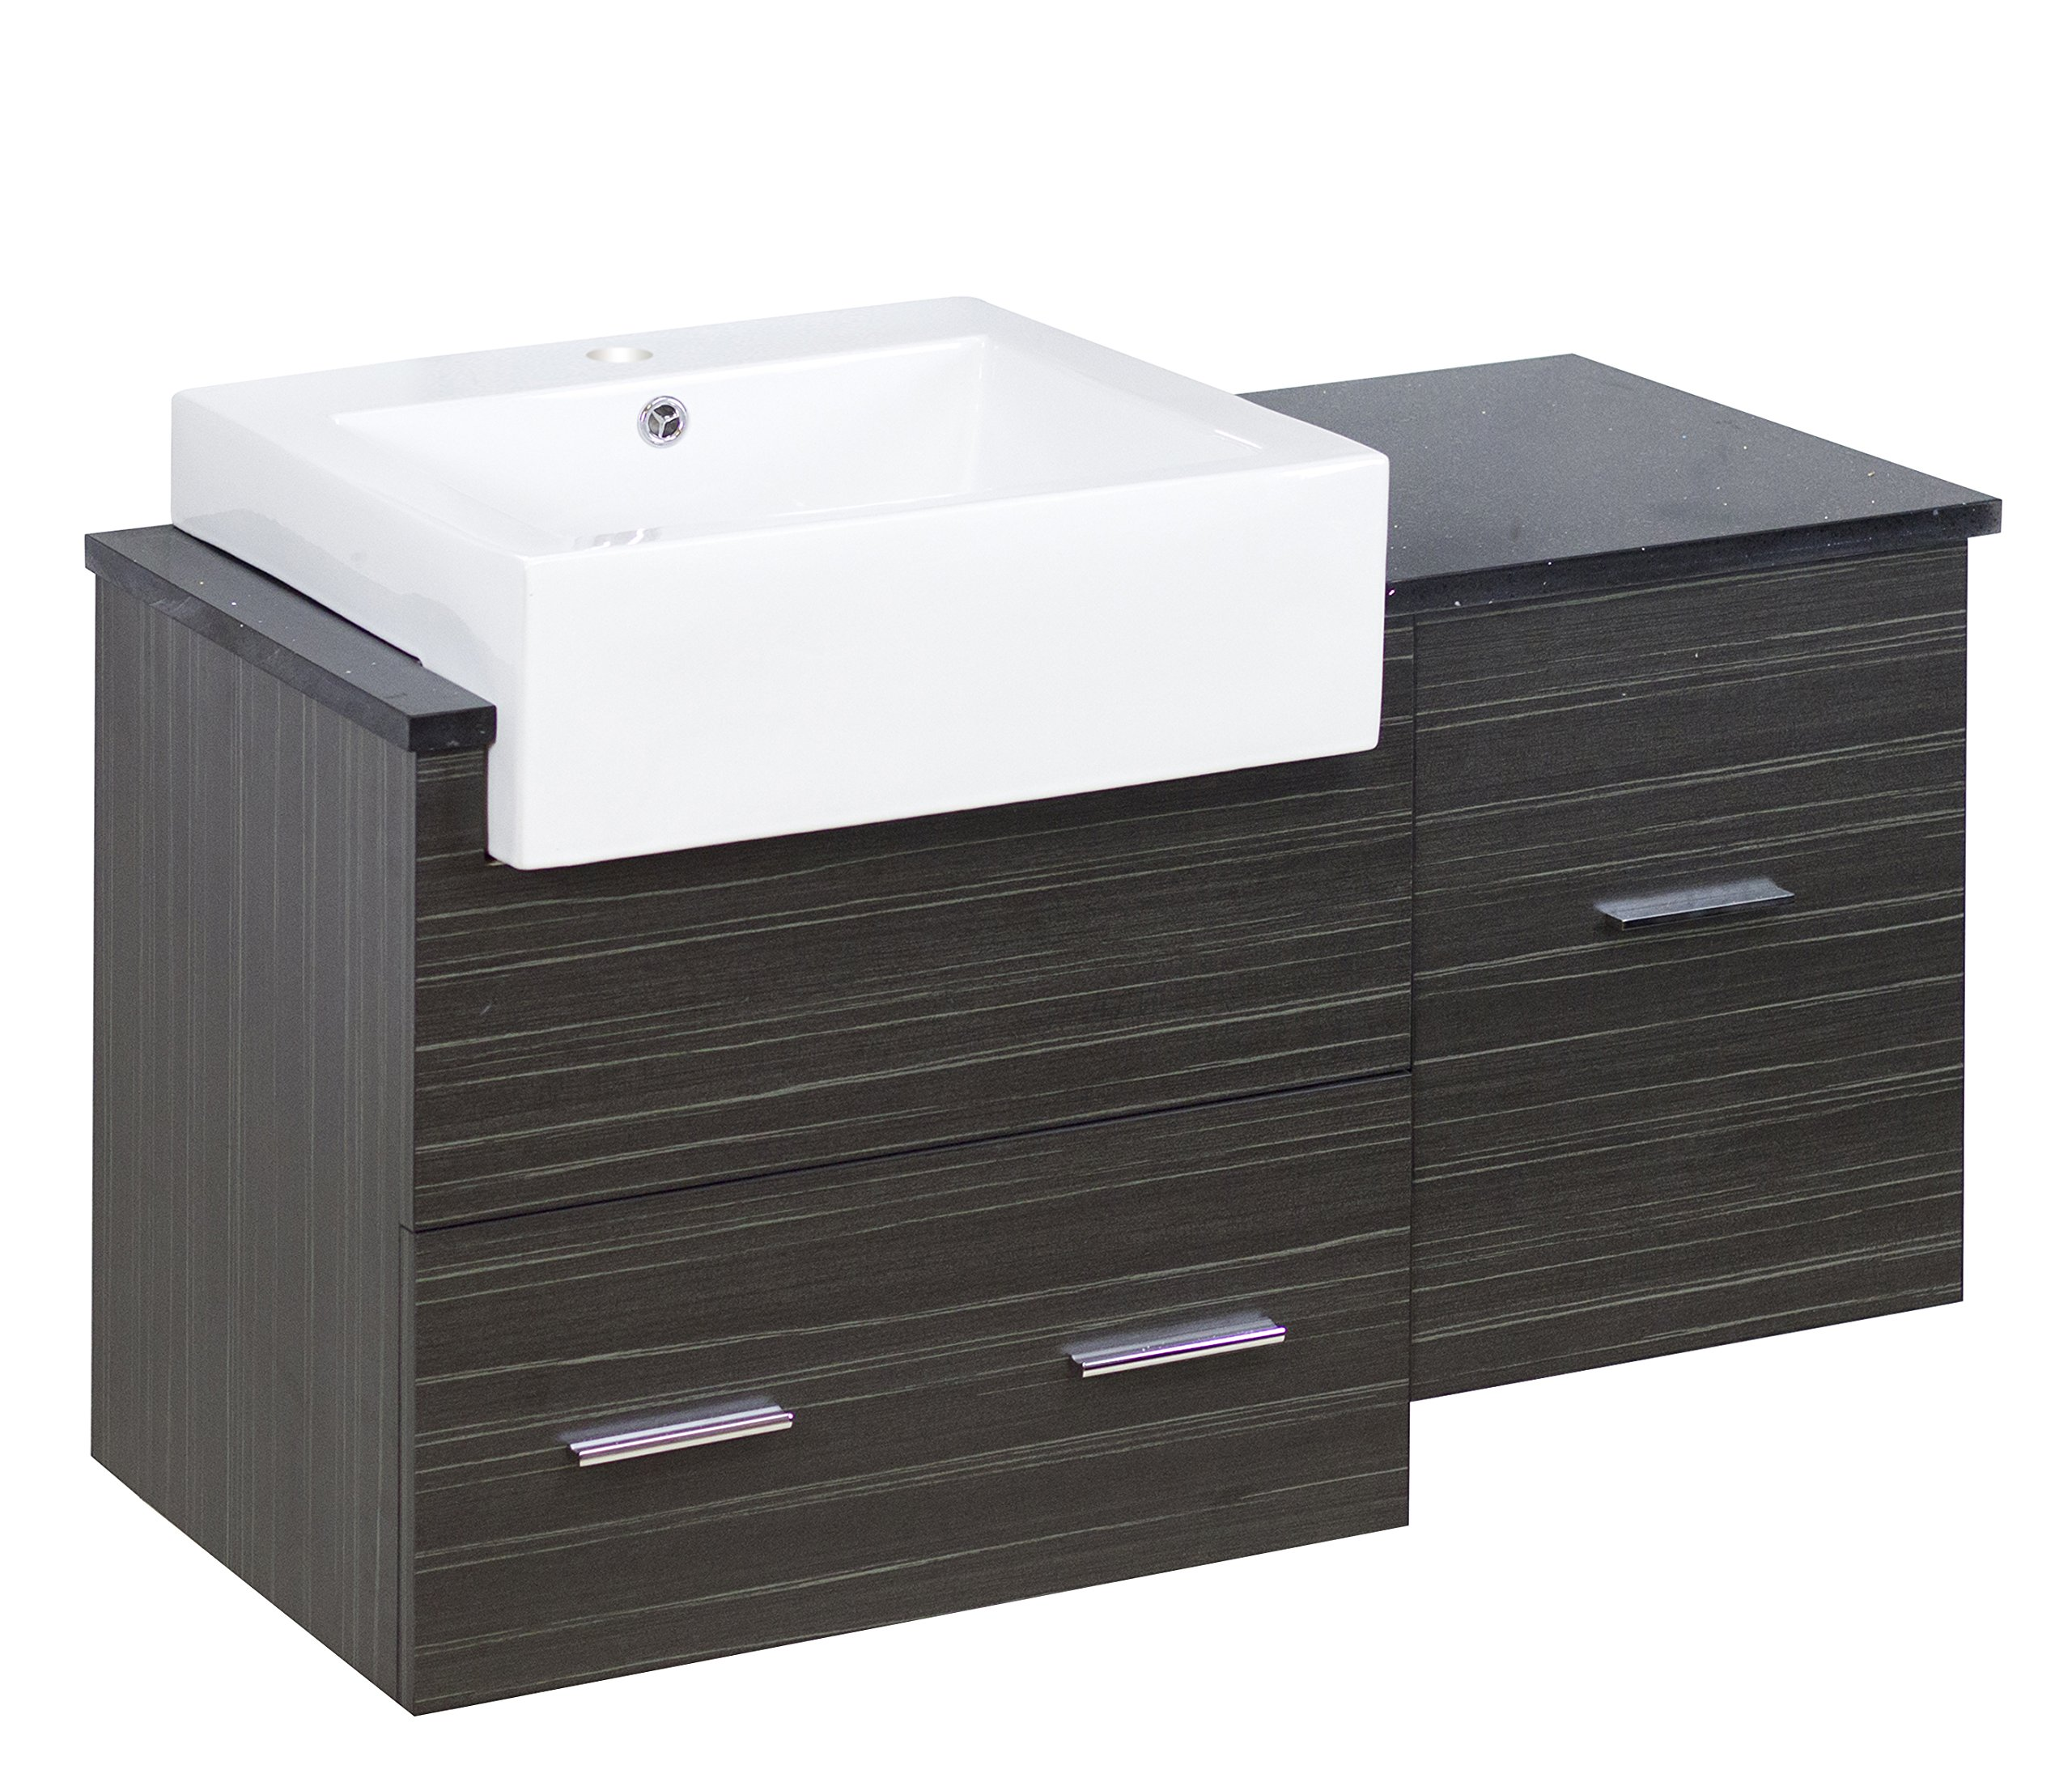 American Imaginations AI-888-1594 Plywood-Melamine Vanity Set In Dawn Grey - Machine cut and taped for smooth chip-free edges. Constructed with solid plywood and decorative melamine. Two large drawers with soft-close slides and matching modern Chrome handles Black Galaxy quartz top is non-porous with superior performance against staining, scratching and scorching. Faucet and accessories not included. No assembly required Solid wood Frame with no mdf or chipboard used. Quality control approved in Canada and re-inspected prior to shipping your order. Cabinet hardware is included - bathroom-vanities, bathroom-fixtures-hardware, bathroom - 91SUCcvsjhL -